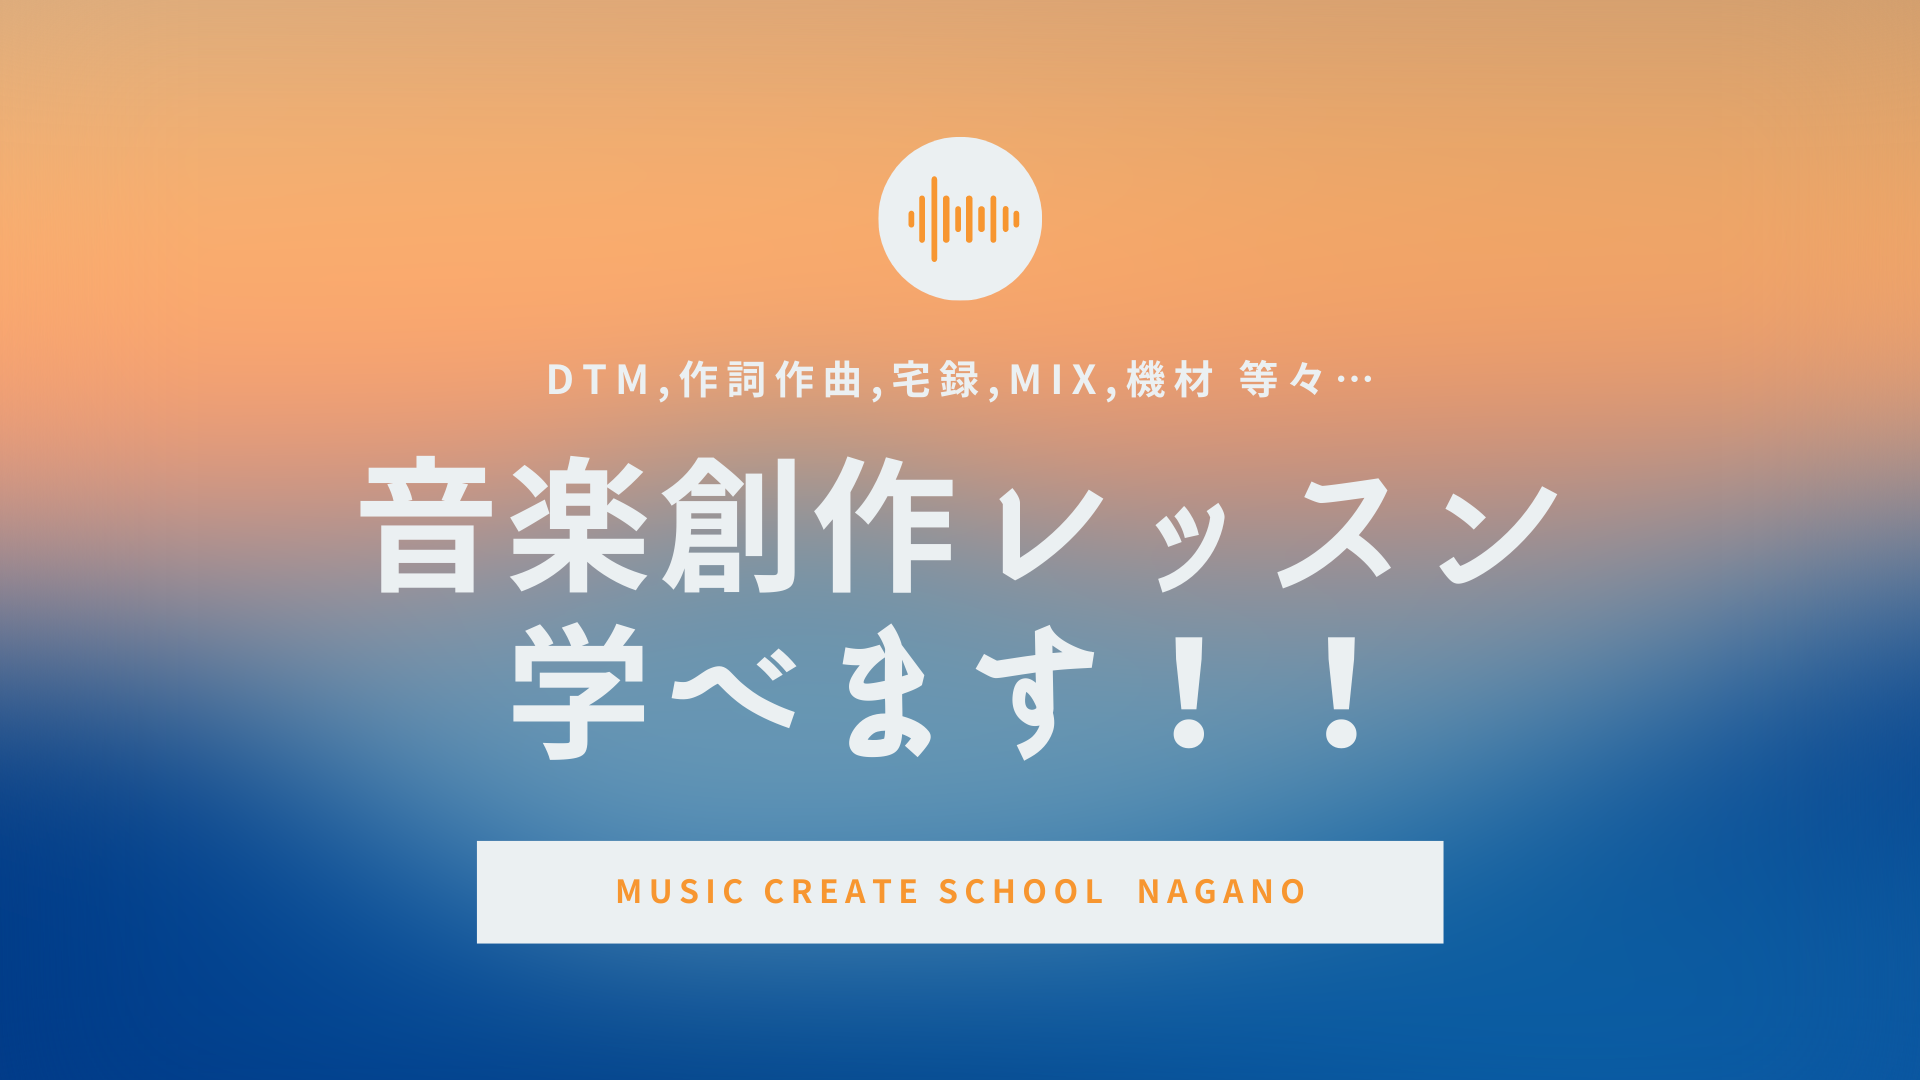 MUSIC CREATE SCHOOL NAGANO -heTor-